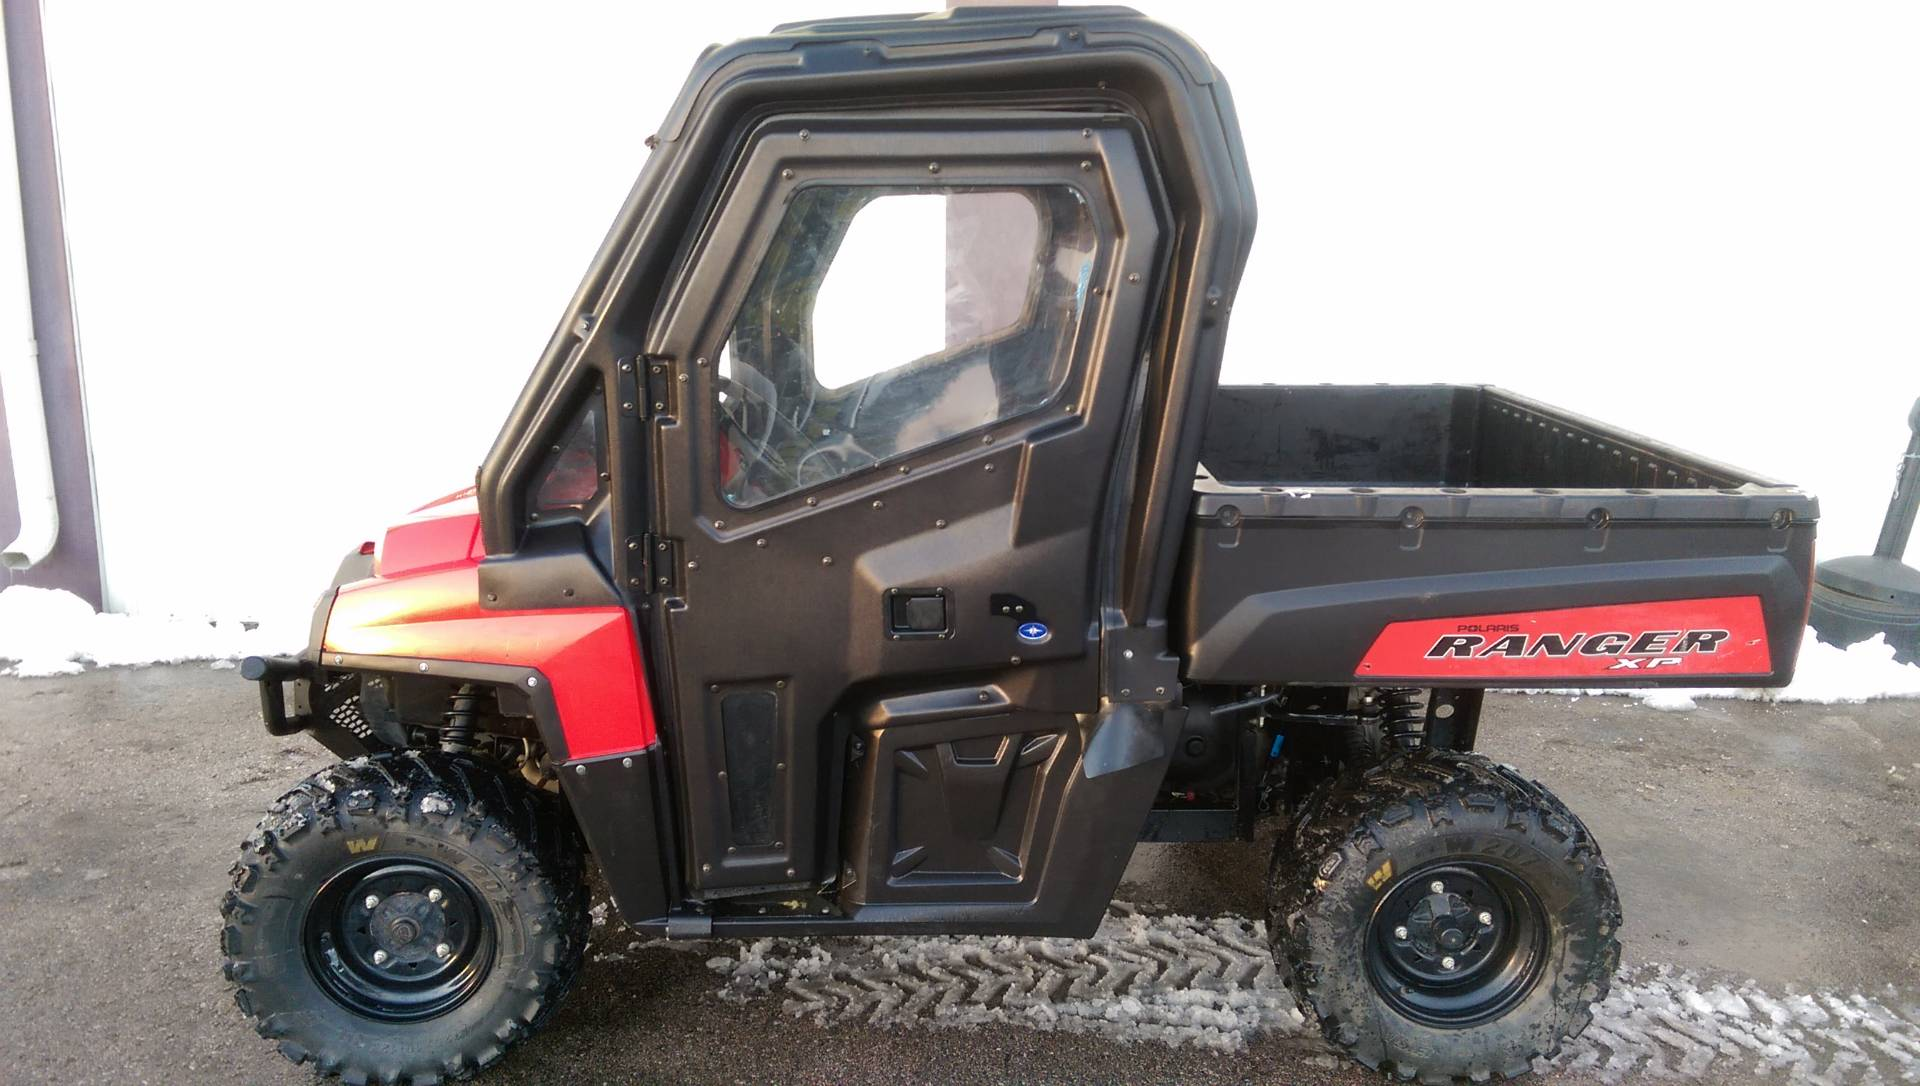 2011 Polaris Ranger XP® 800 in Rapid City, South Dakota